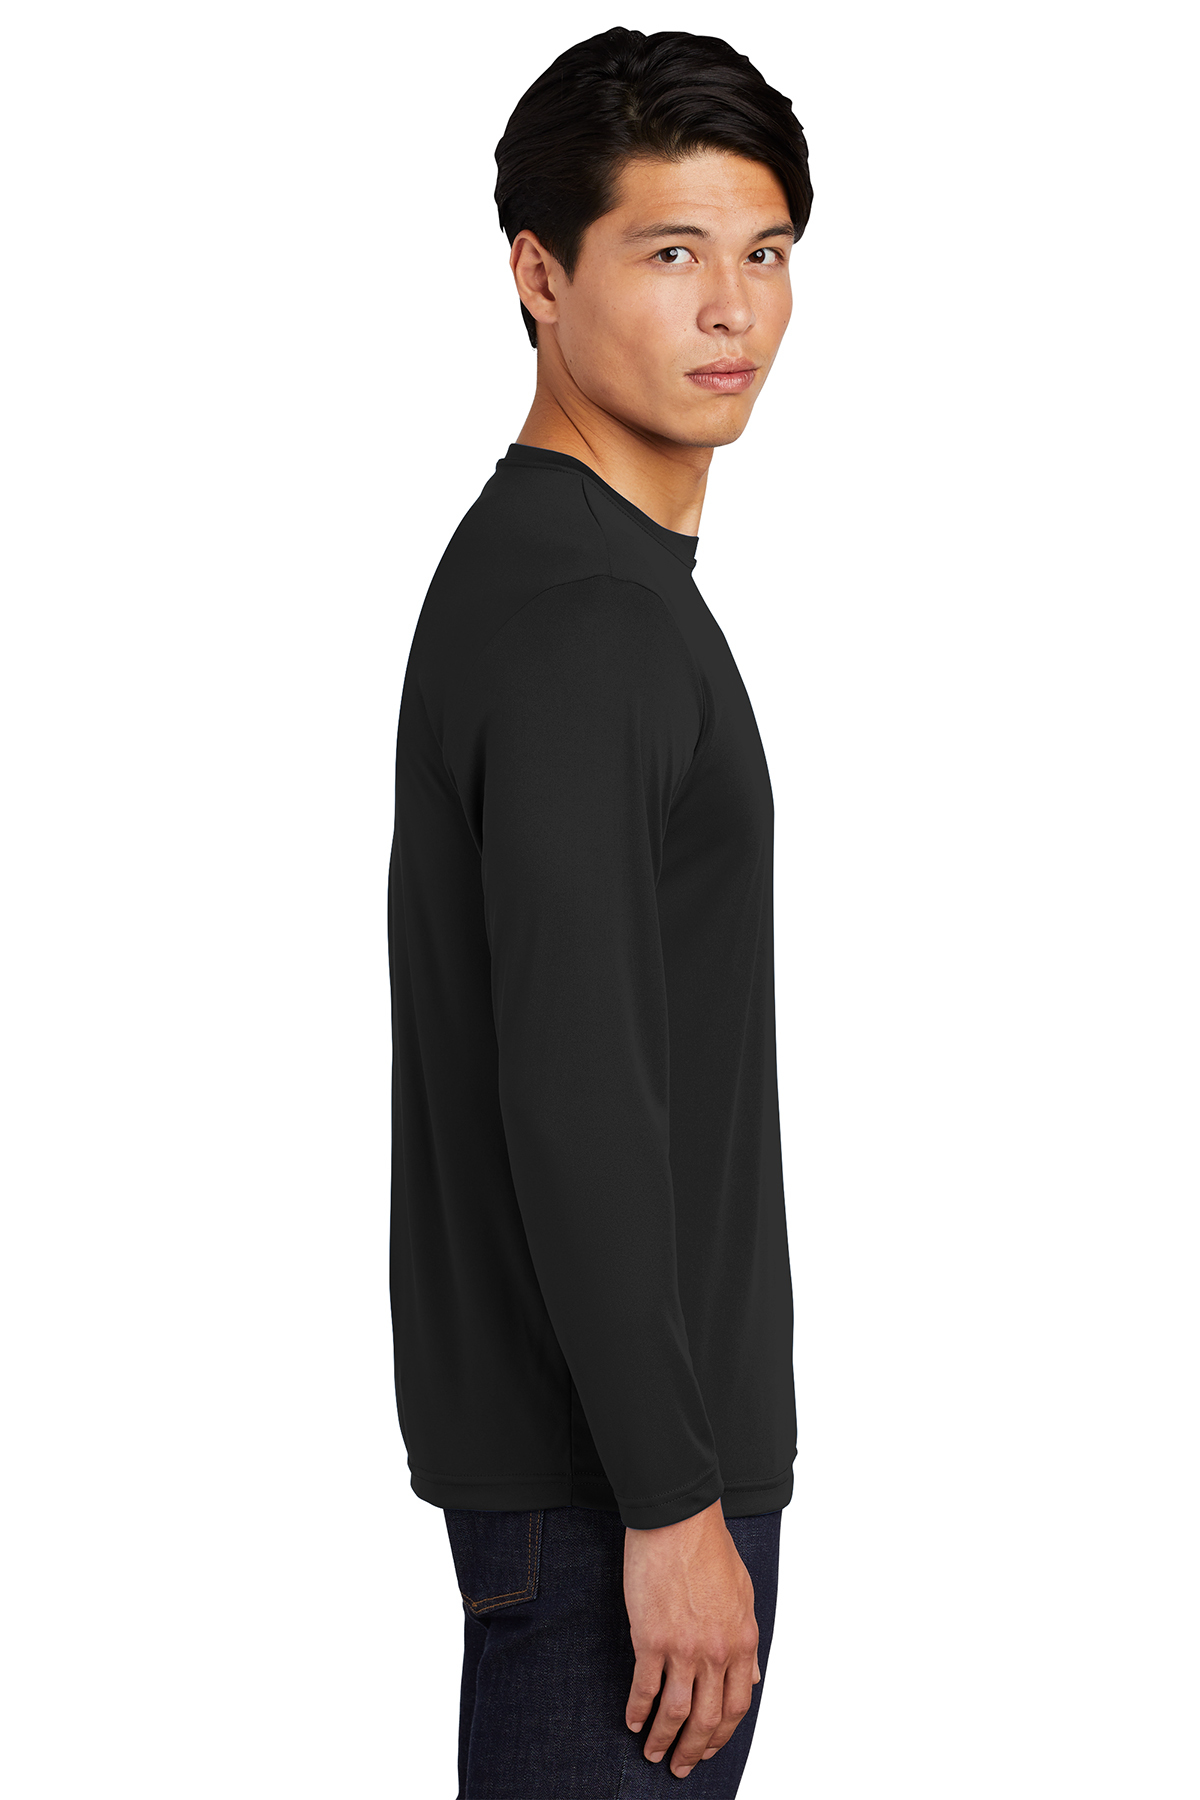 Sport Tek Long Sleeve Posicharge Competitor Tee Performance T Shirts Sport Tek St350ls the competitor tee 153 lets you take on your opponents in maximum comfort! sport tek long sleeve posicharge competitor tee performance t shirts sport tek